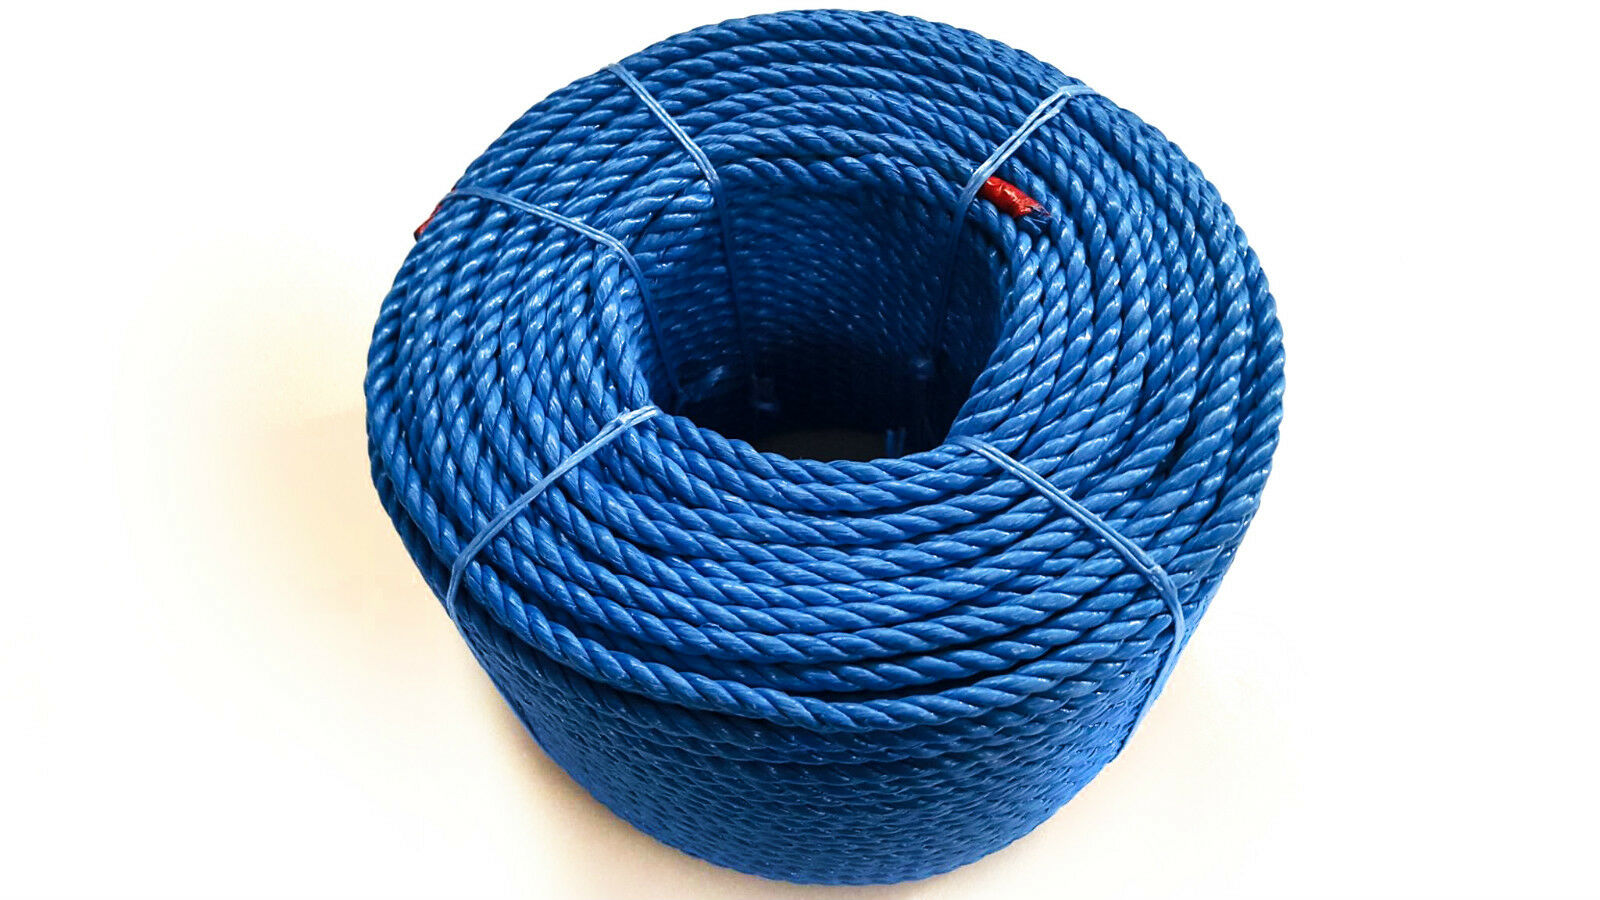 bluee Polypropylene Rope Coils, 24mm Polyrope, Sailing, Agriculture, Camping,